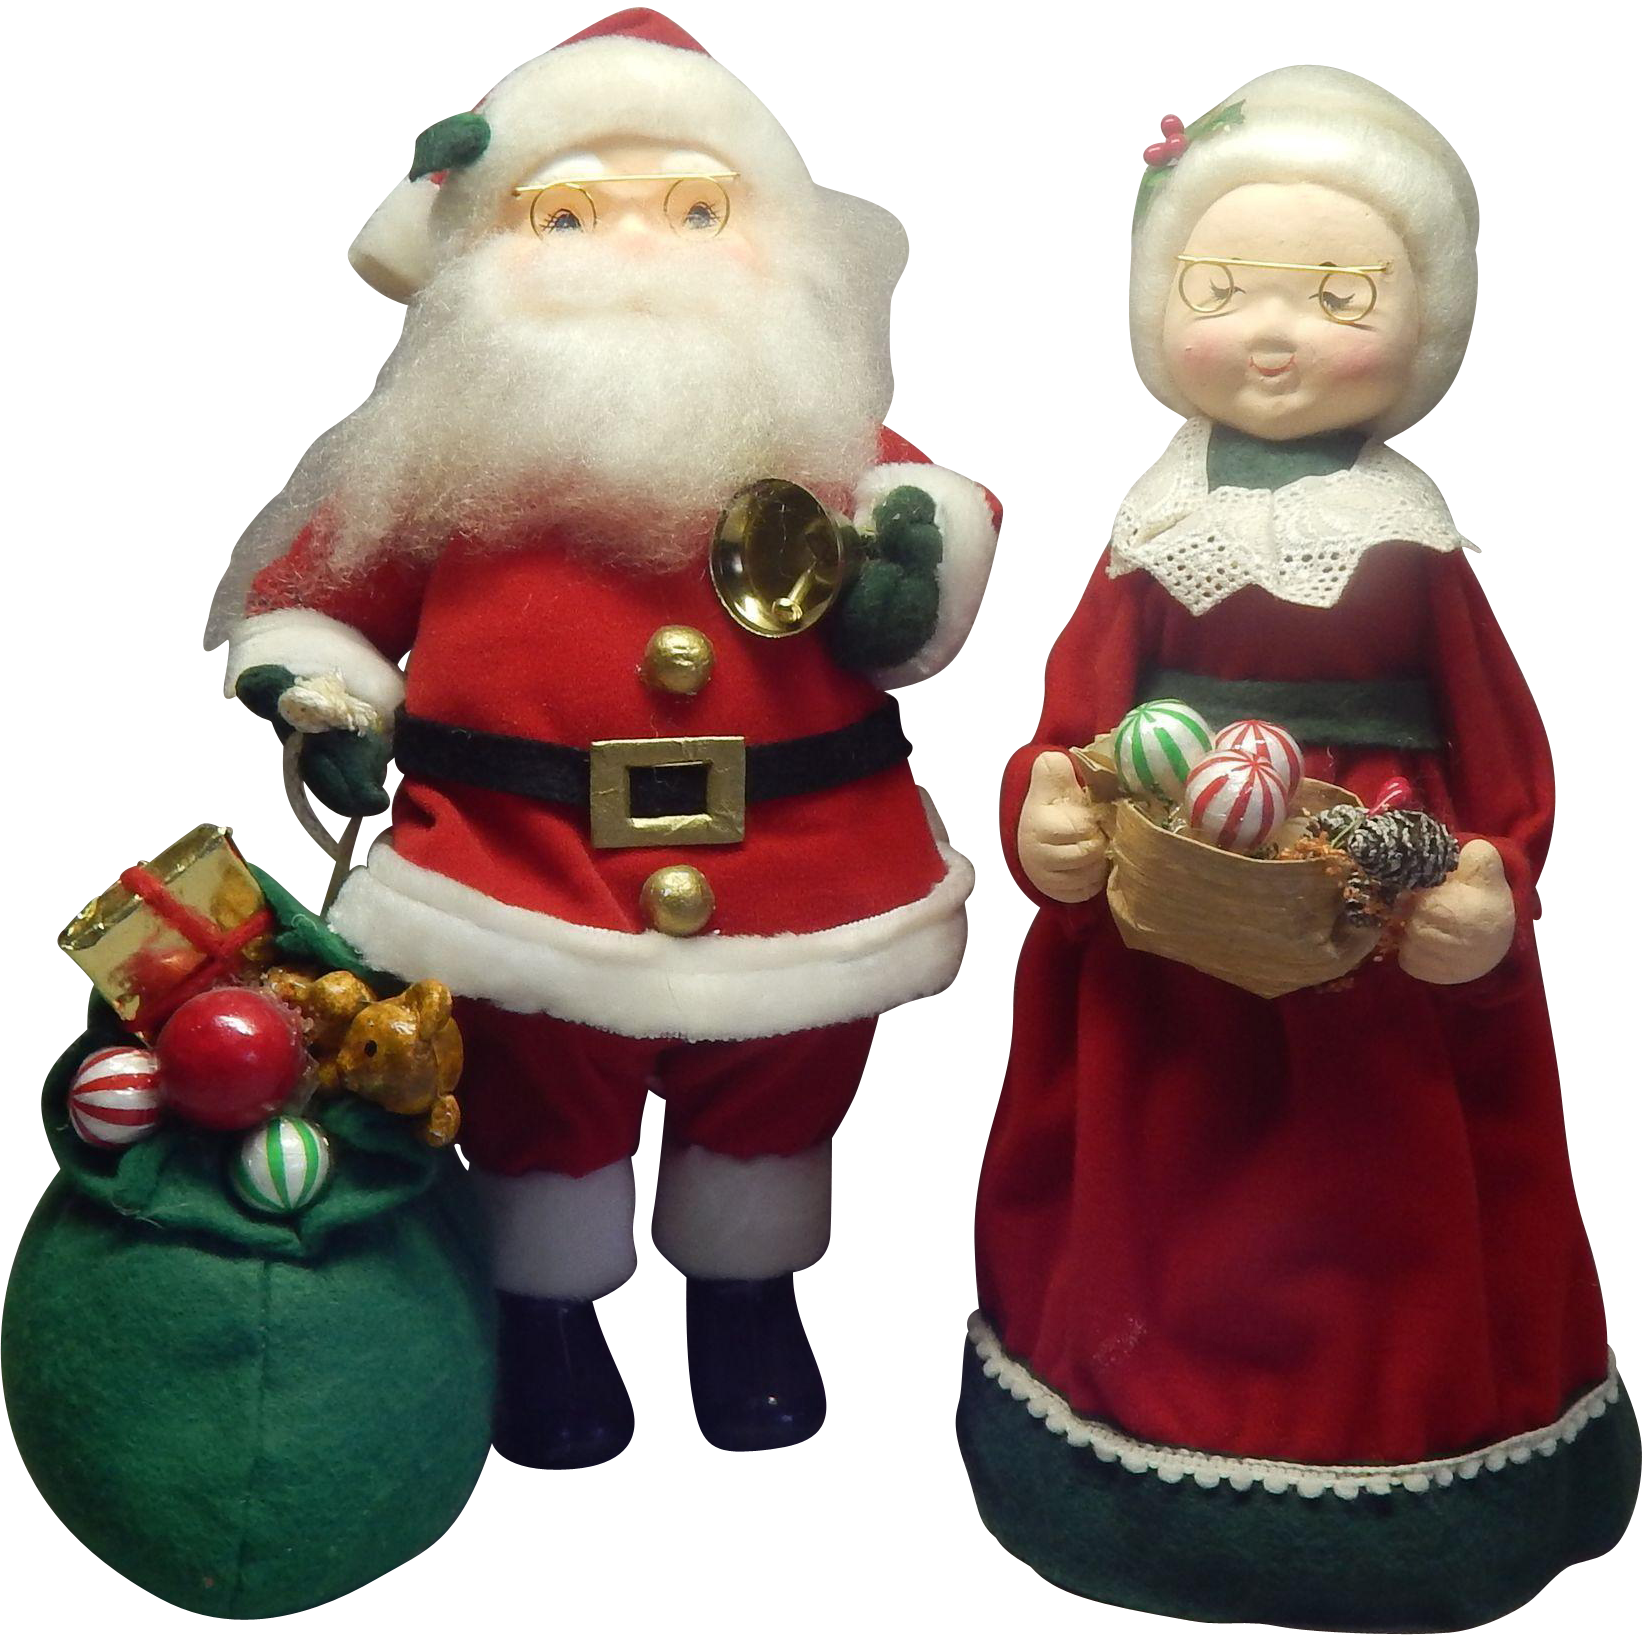 Paper Mache Santa Claus and Mrs Claus Figures